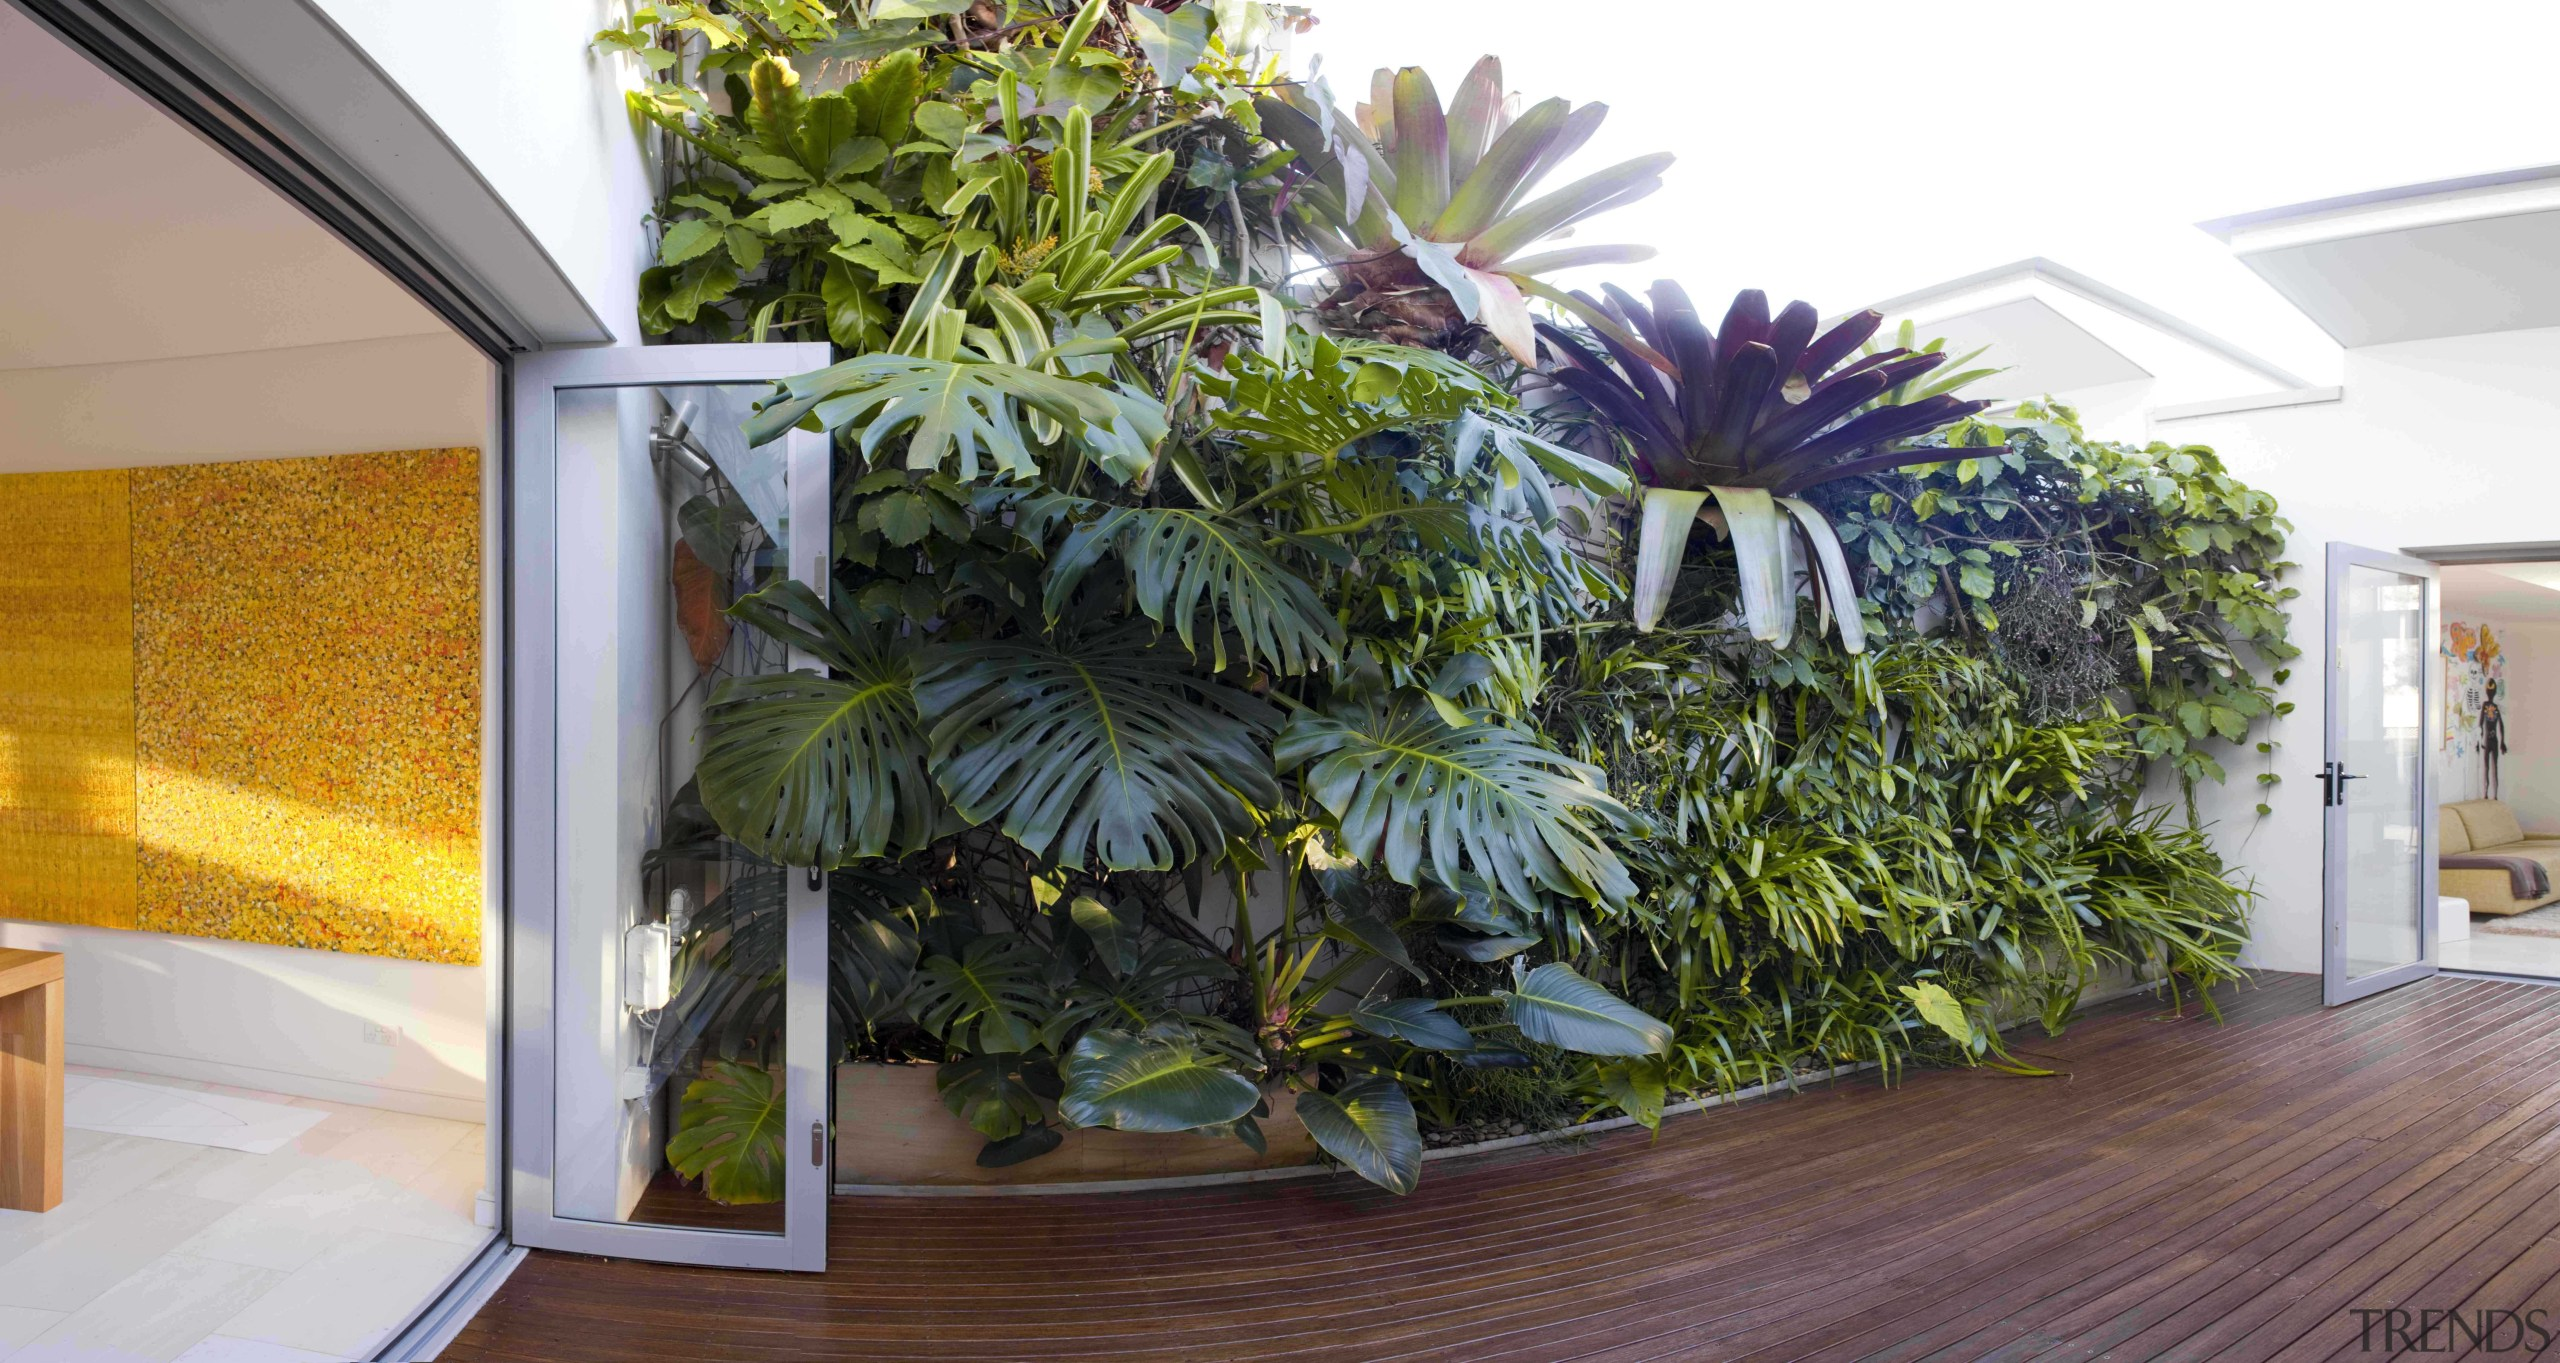 What you need to know about greening your botany, flower, home, house, houseplant, plant, room